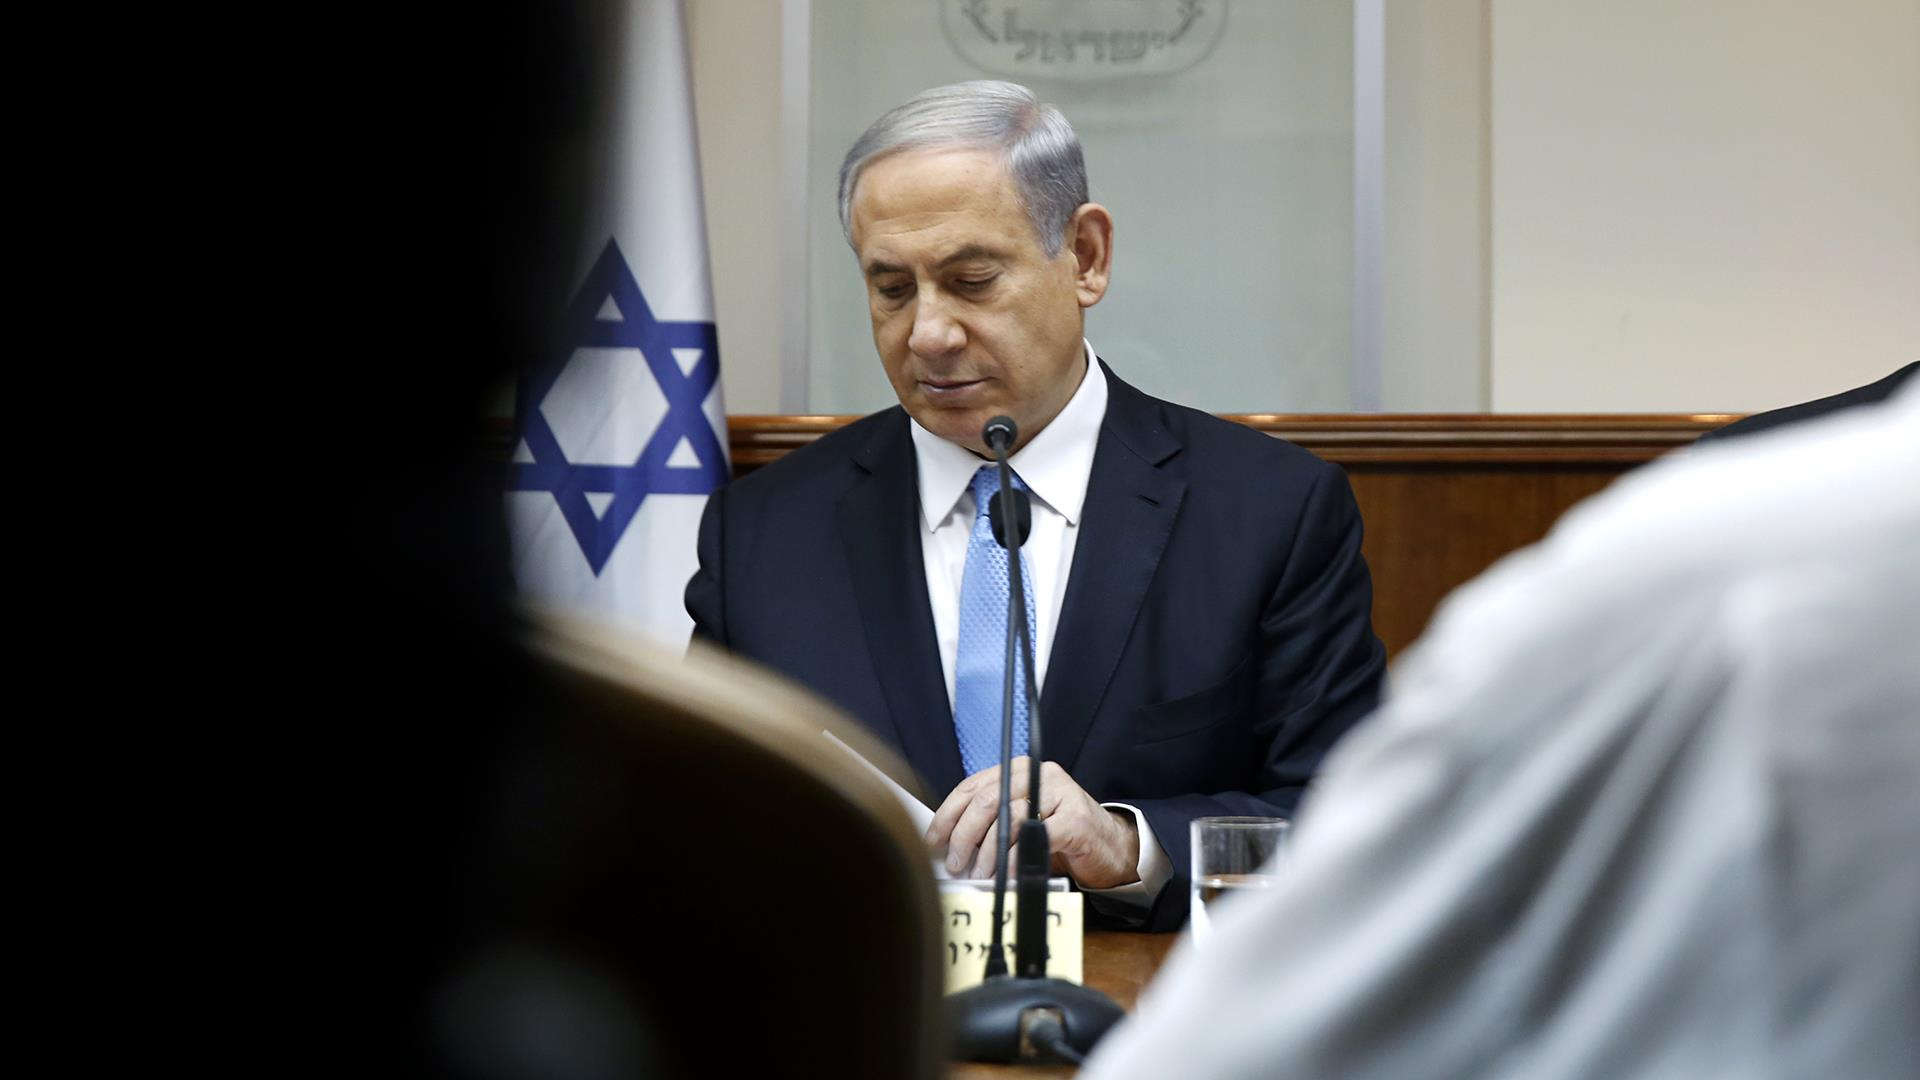 Netanyahu talks Iran nuke plan to Congress